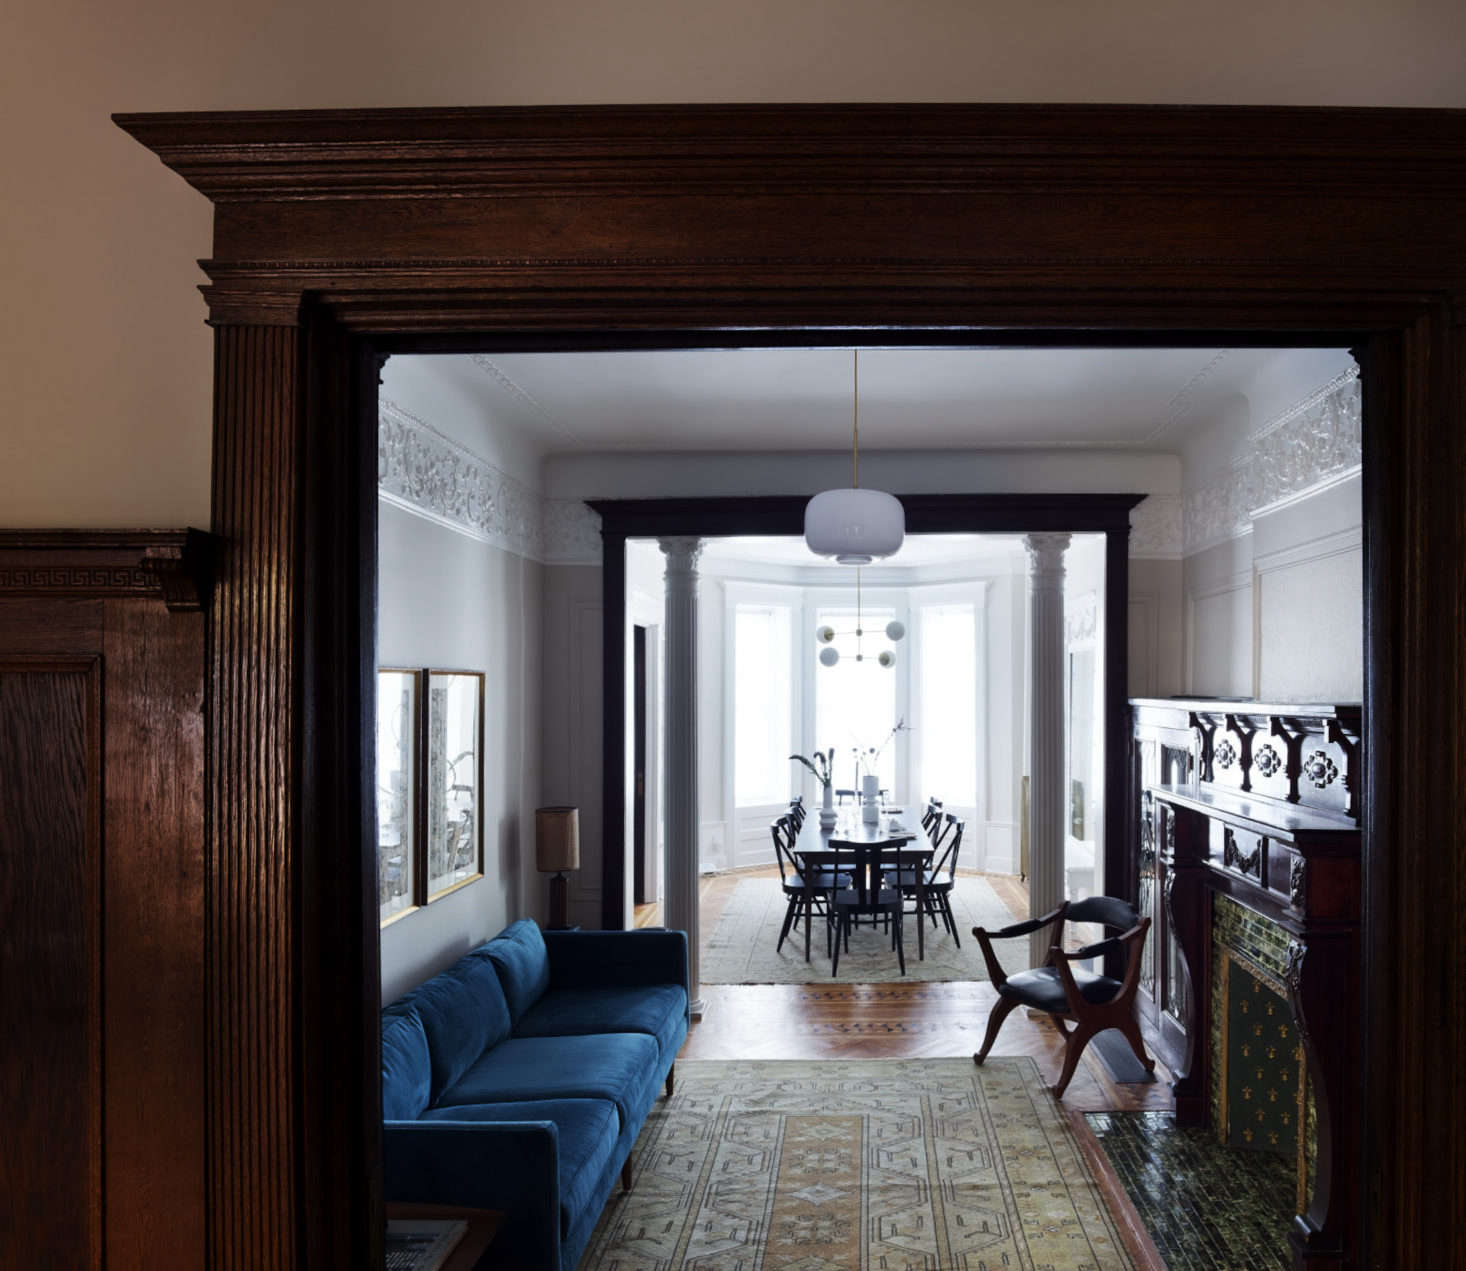 Just off the dining room is a narrow parlor, fitted with a blue velvet couch across from the original fireplace. Otherwise it's left sparse, to allow easy movement between dining room and living room.